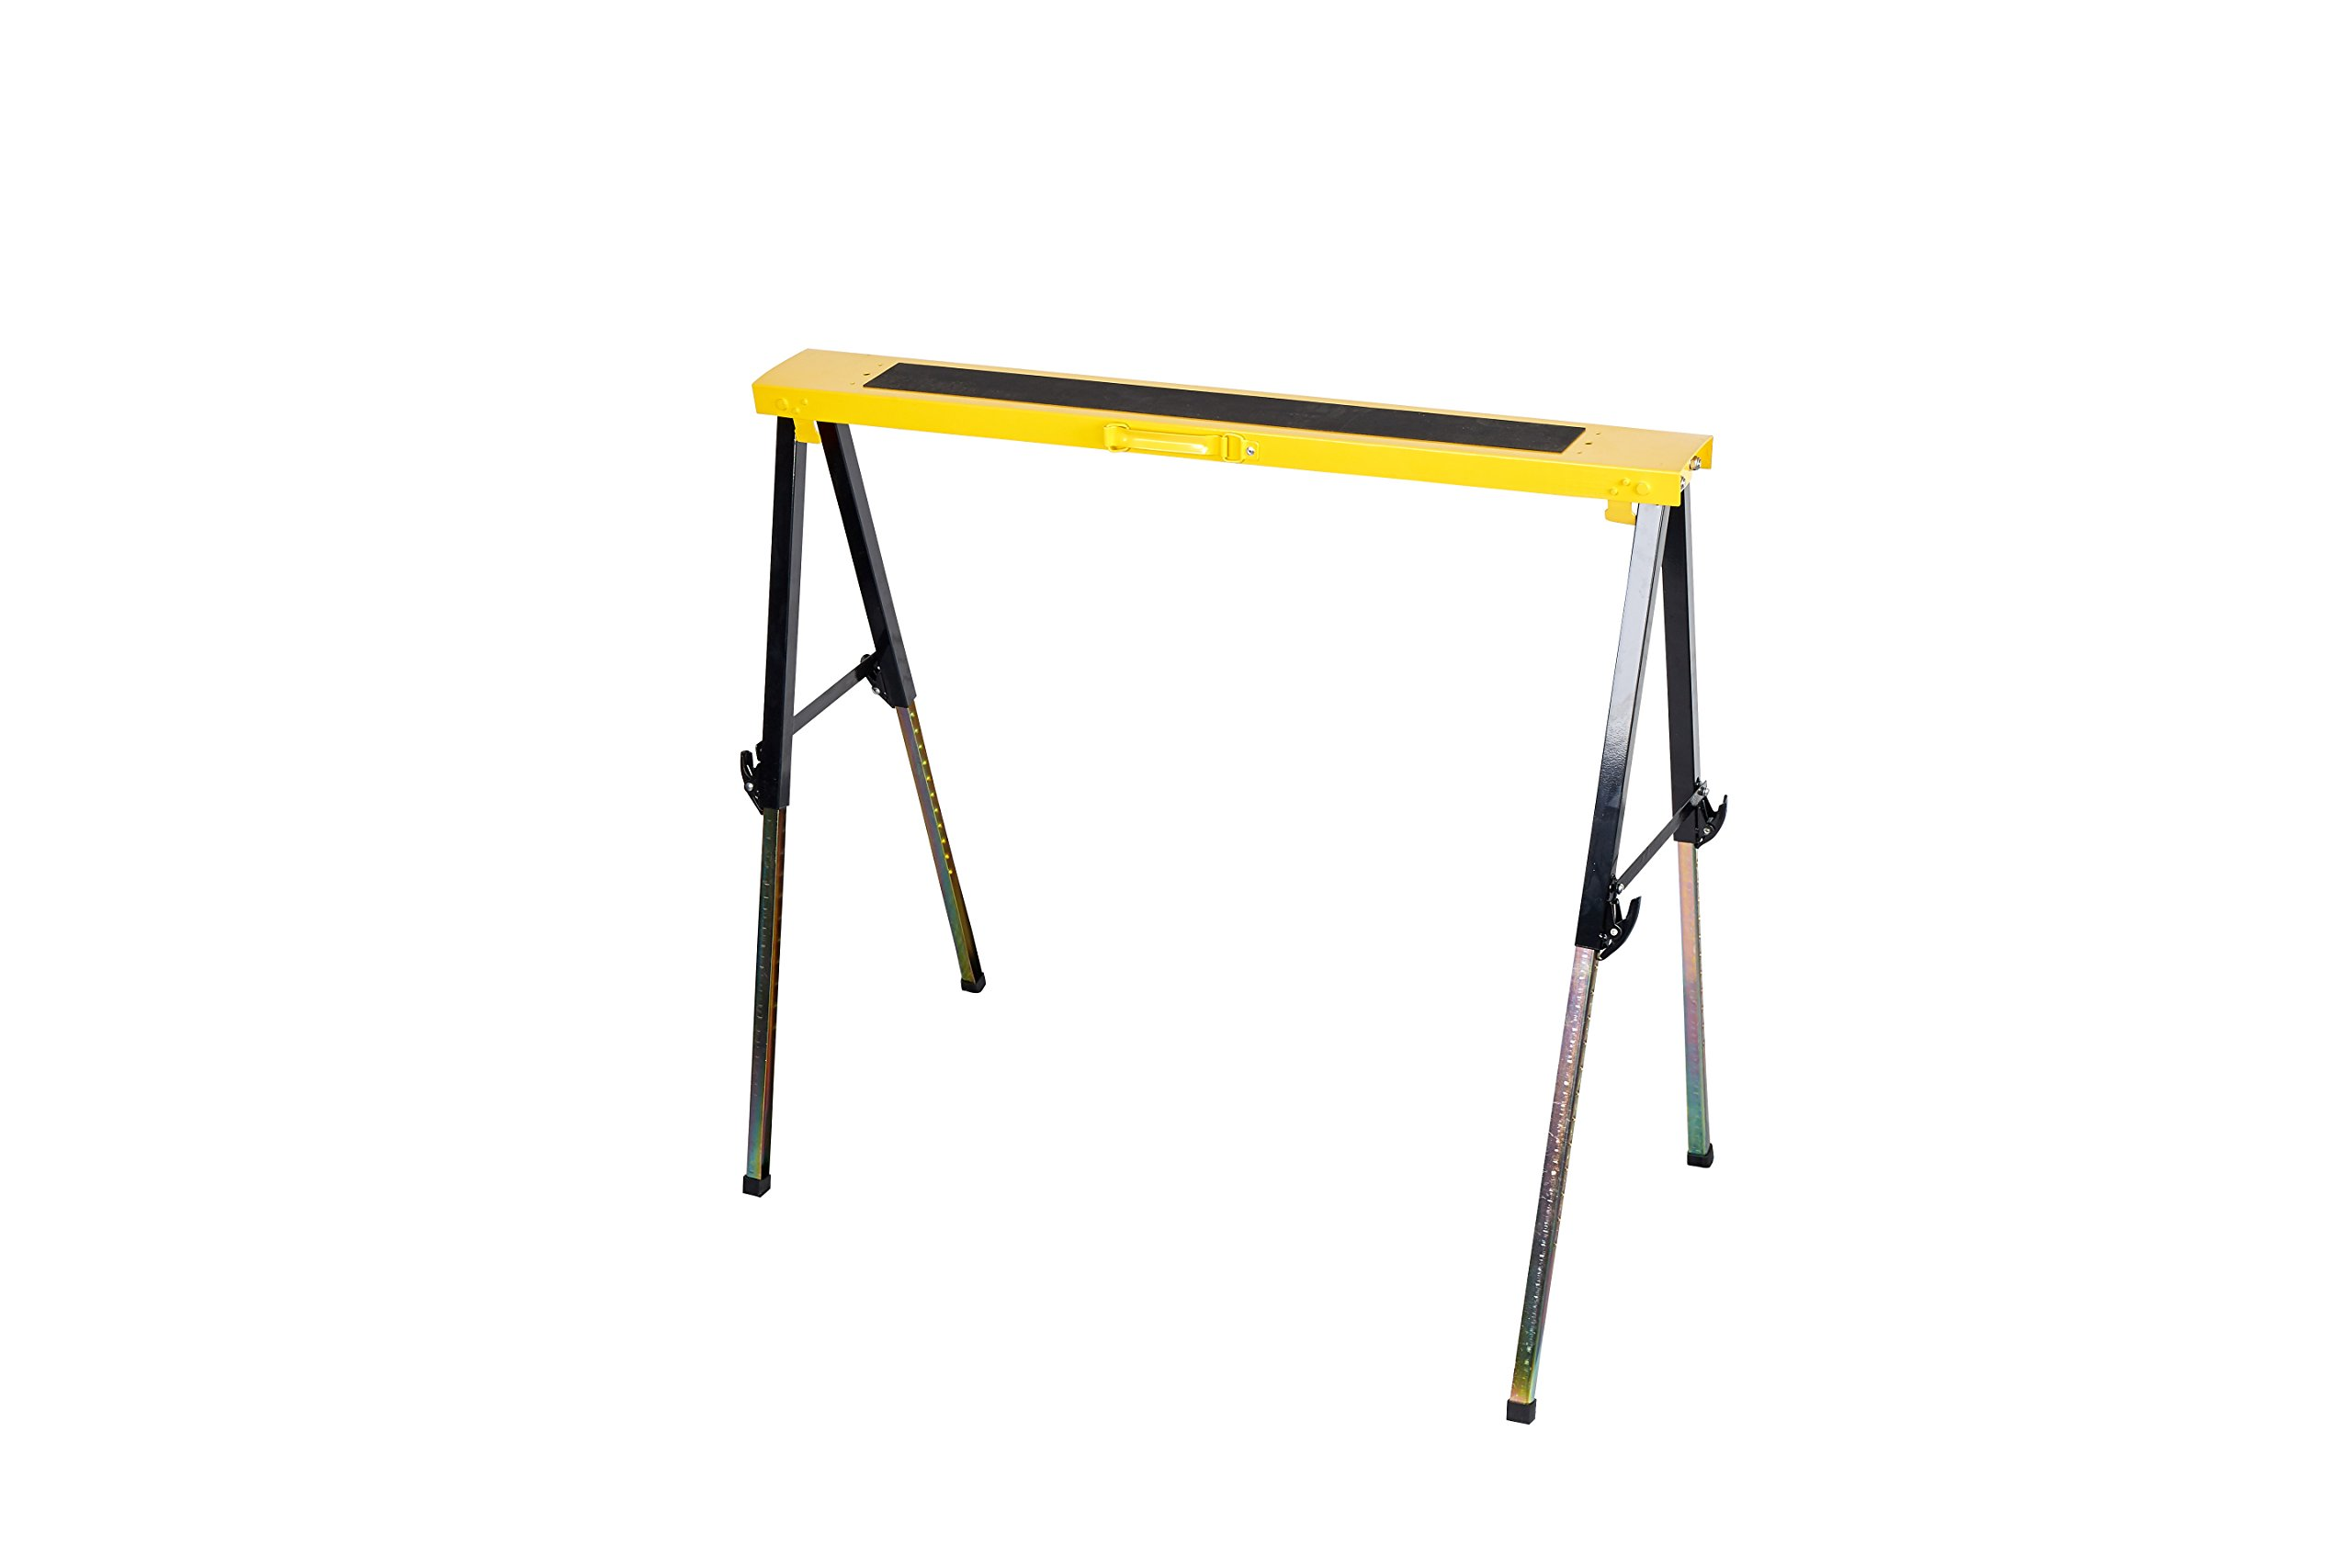 Single Pack Steel Multi Purpose Folding Legs and 12 Position Height Adjustable Sawhorse Brackets Capacity 250LBS